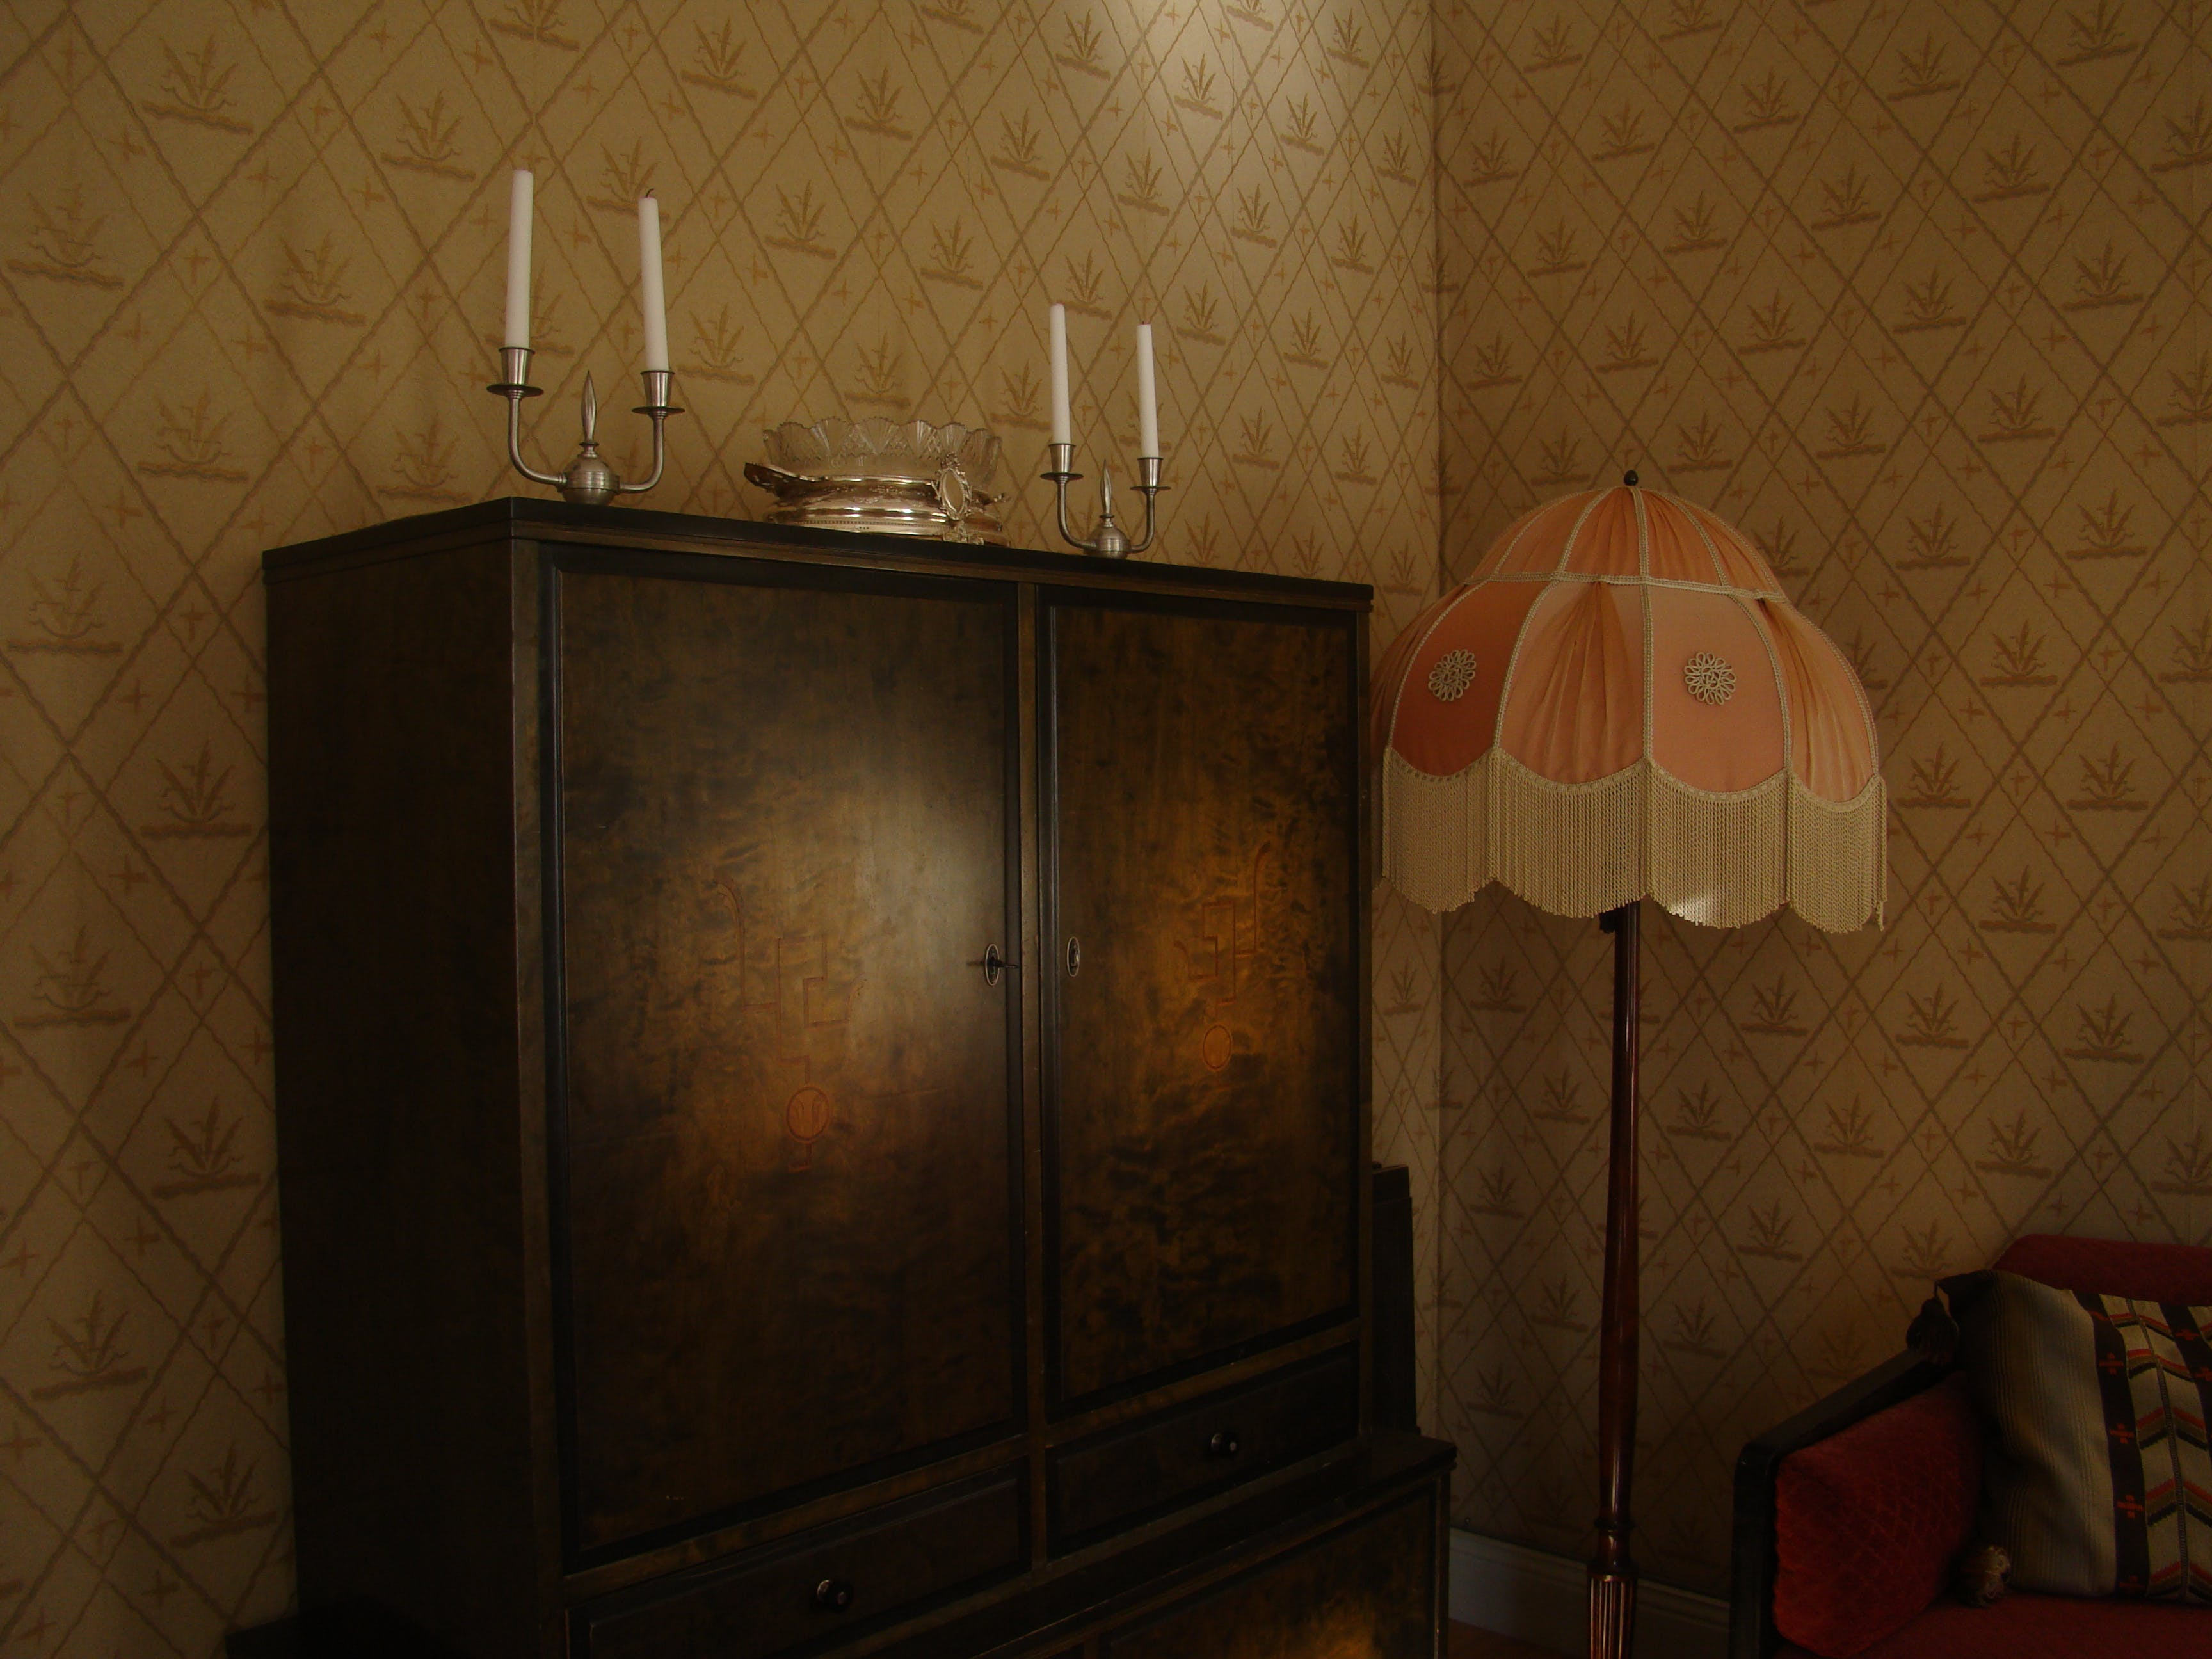 Black Wooden Wardrobe and White and Pink Pedestal Lamp Inside the Room